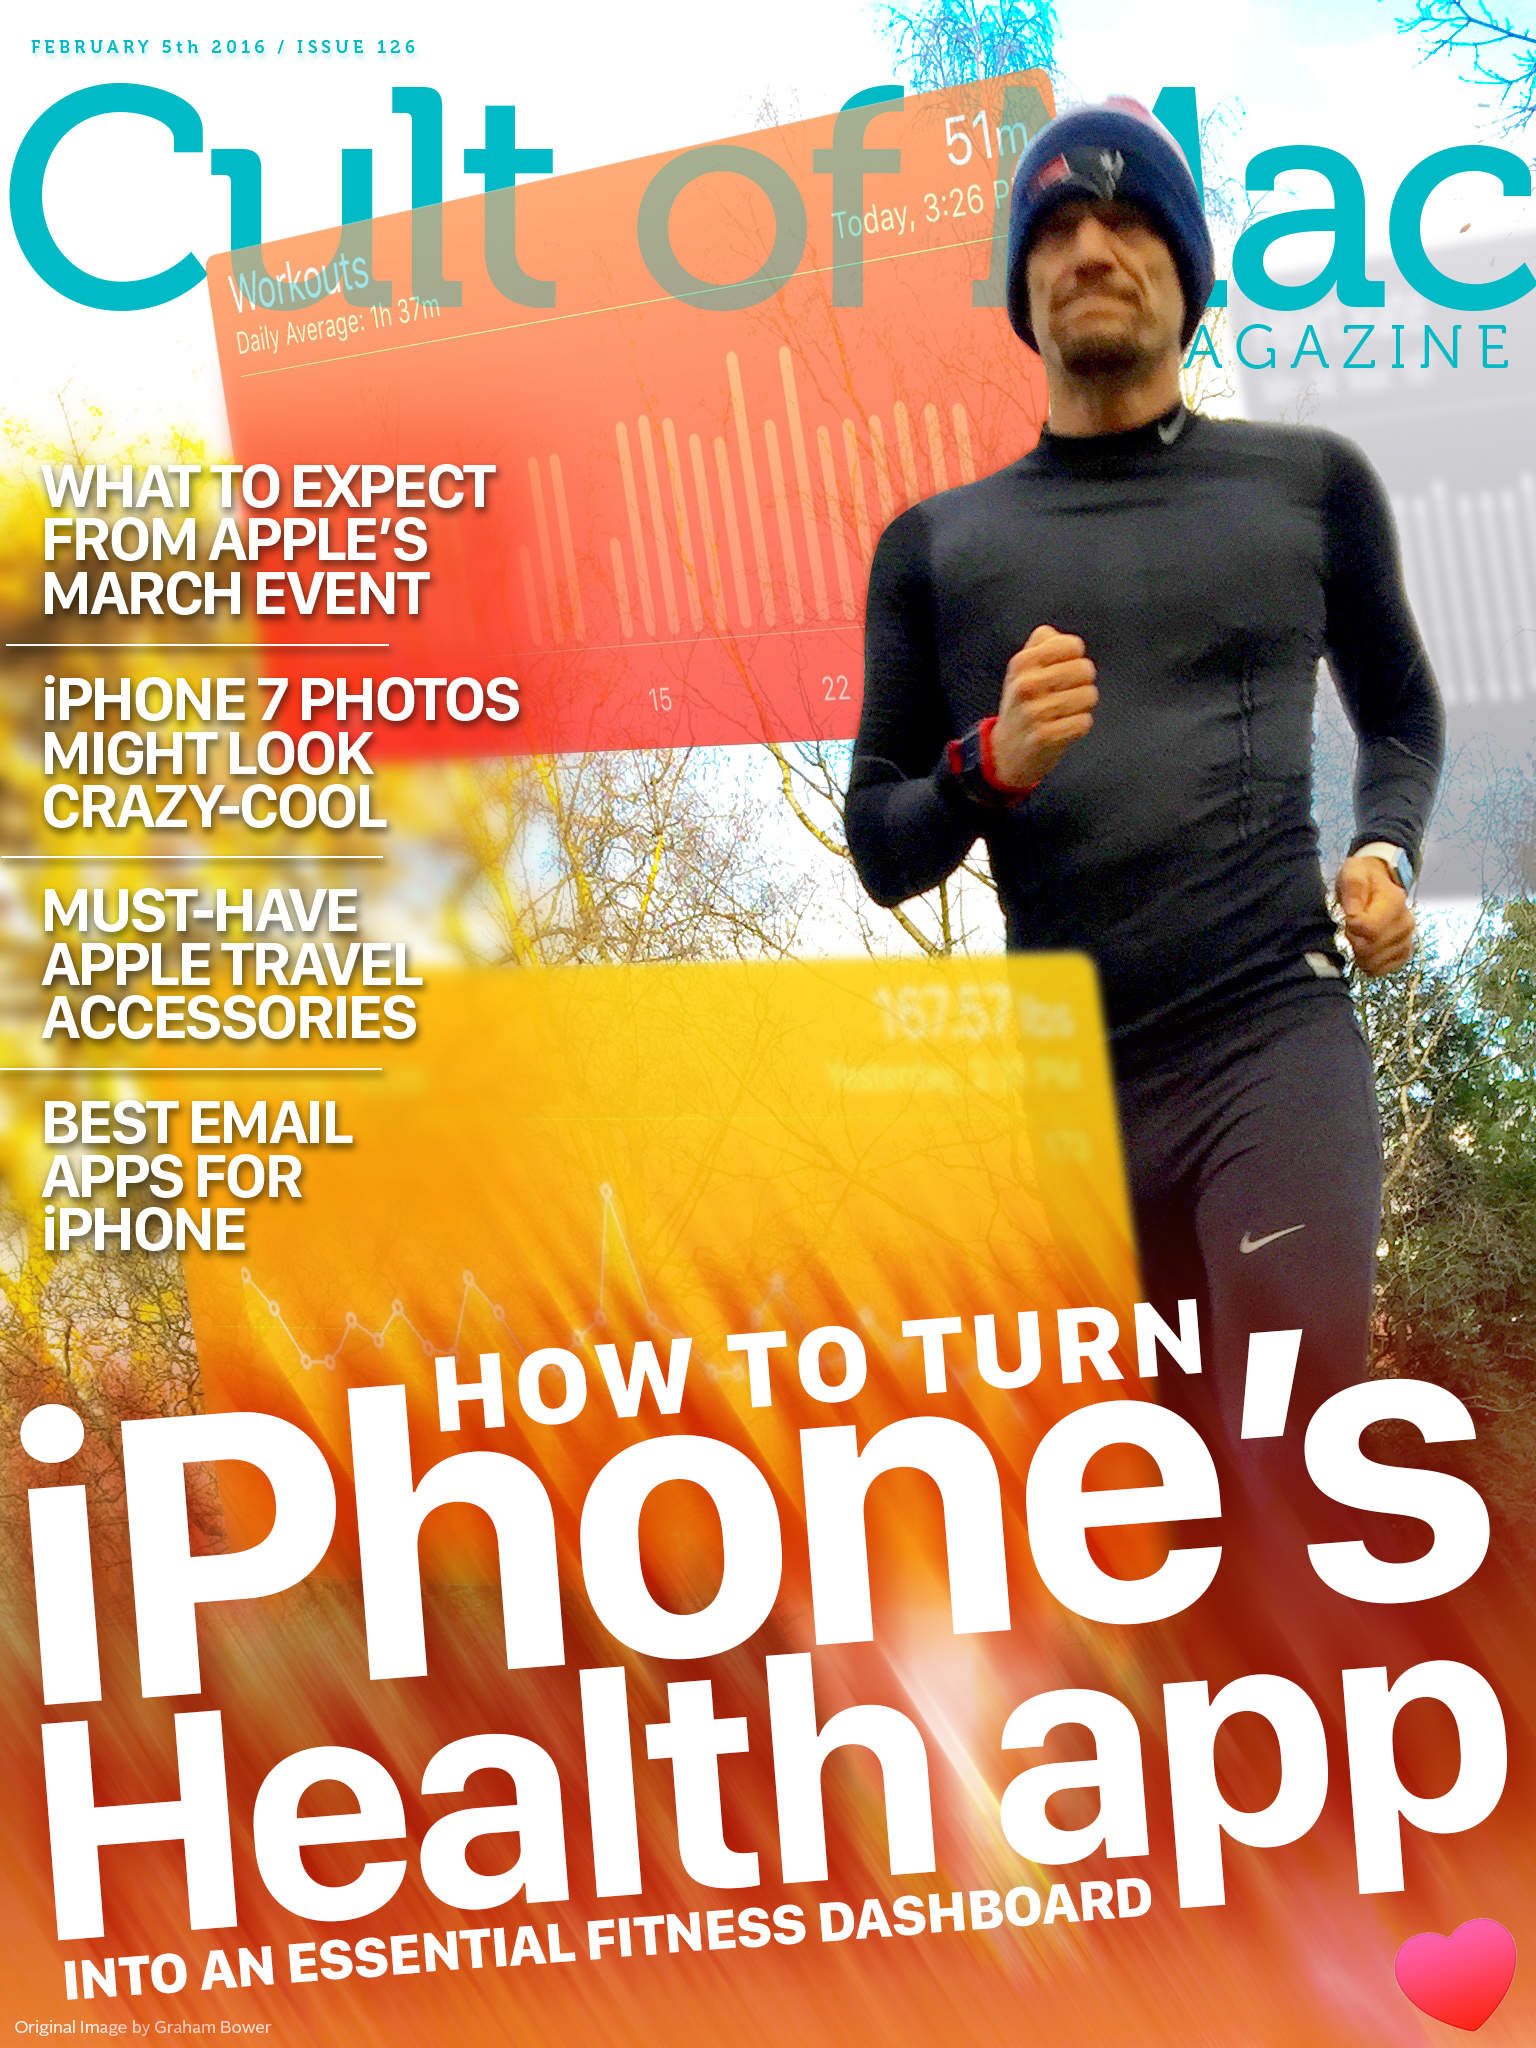 Rule the health app plus best email apps apples march event and rule the health app plus best email apps apples march event and more cult of mac fandeluxe Images